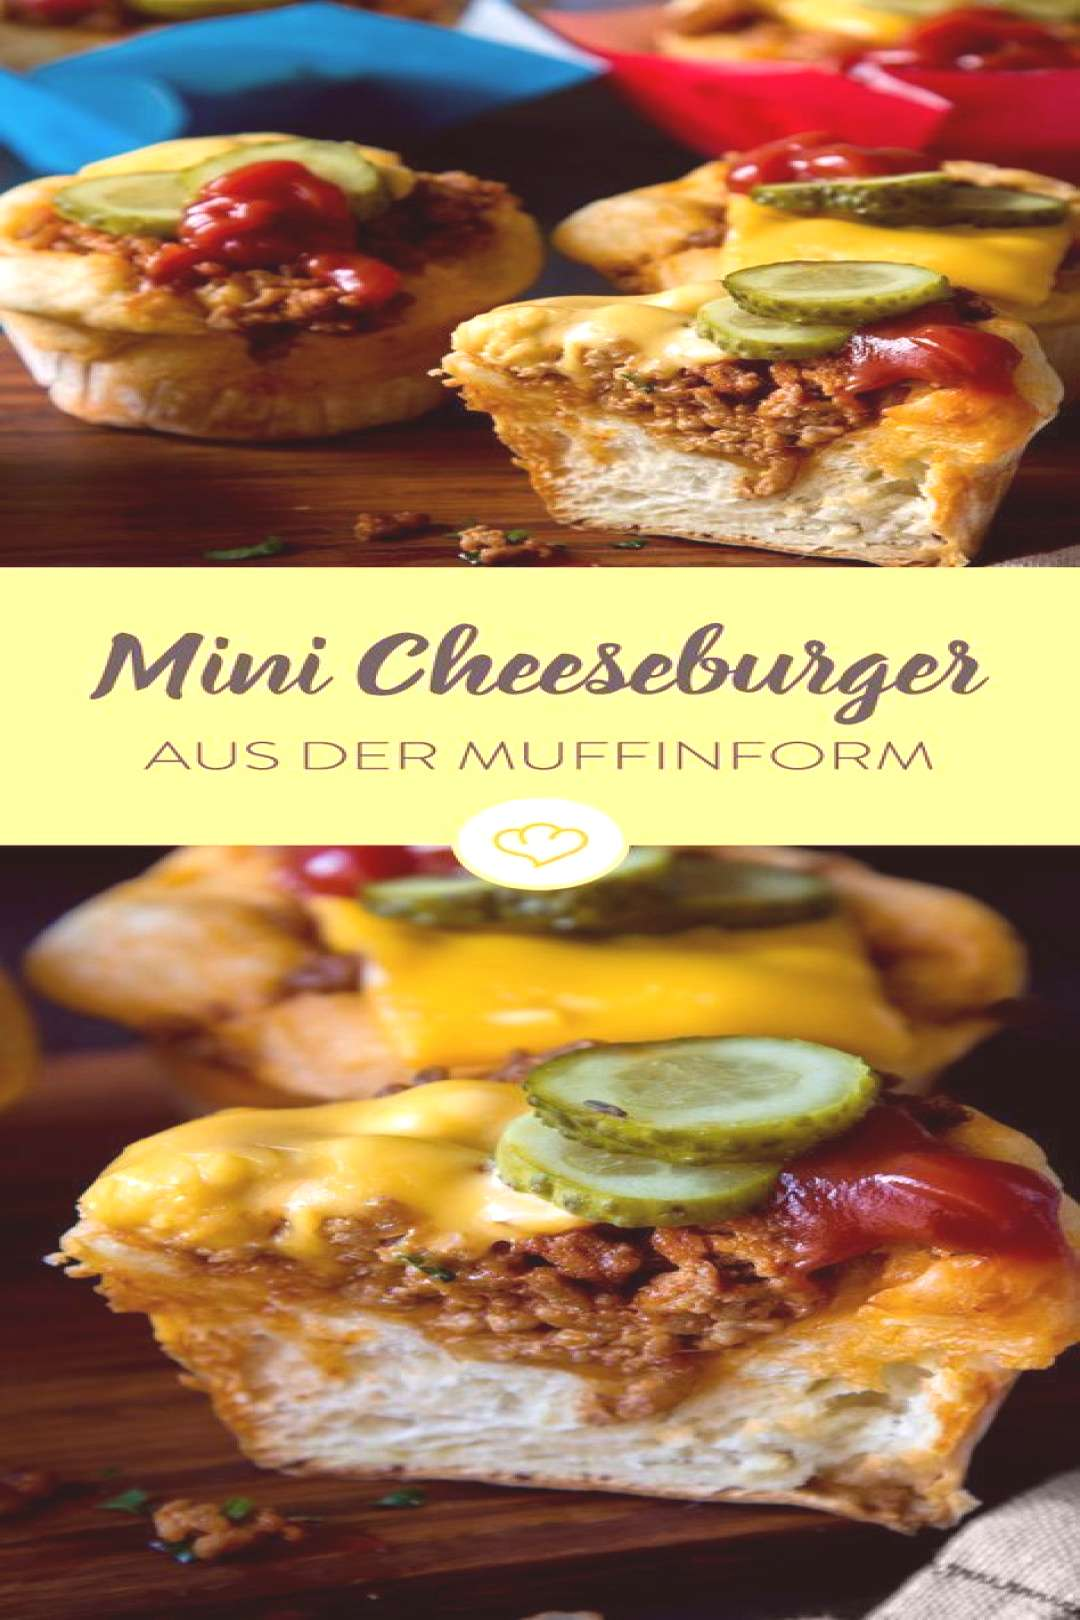 Mini-Cheeseburger Der US-Klassiker aus Muffins Mini-Cheeseburger Der US-Klassiker aus Muffins,